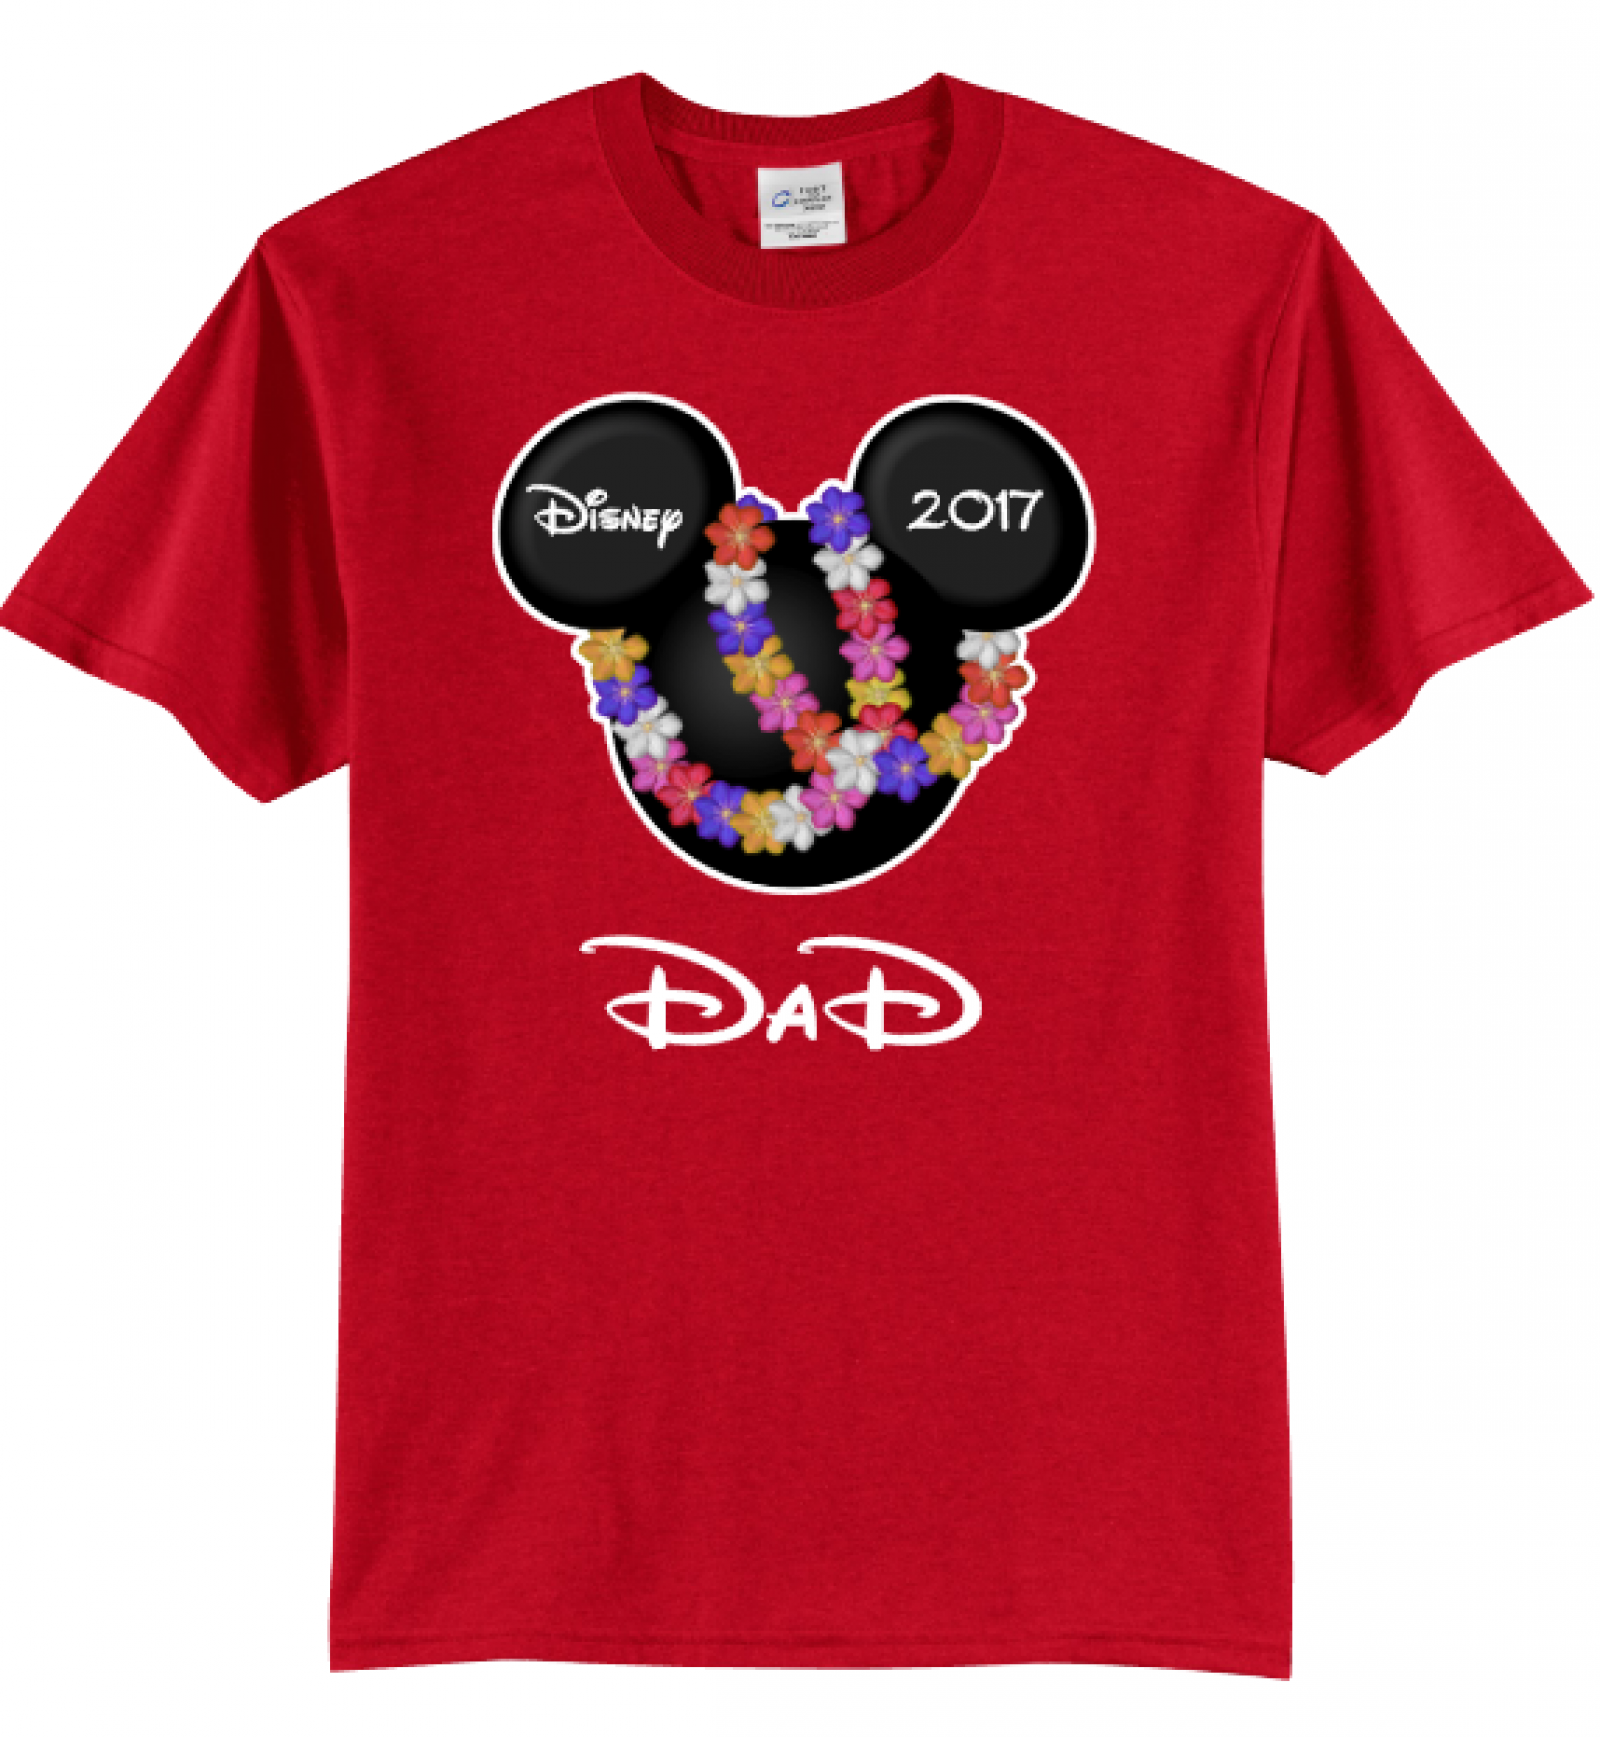 0c8c9bd7 ... Disney Hawaii Family Shirt / Pants Mickey and Minnie Vacation T-Shirt  Bottoms ...